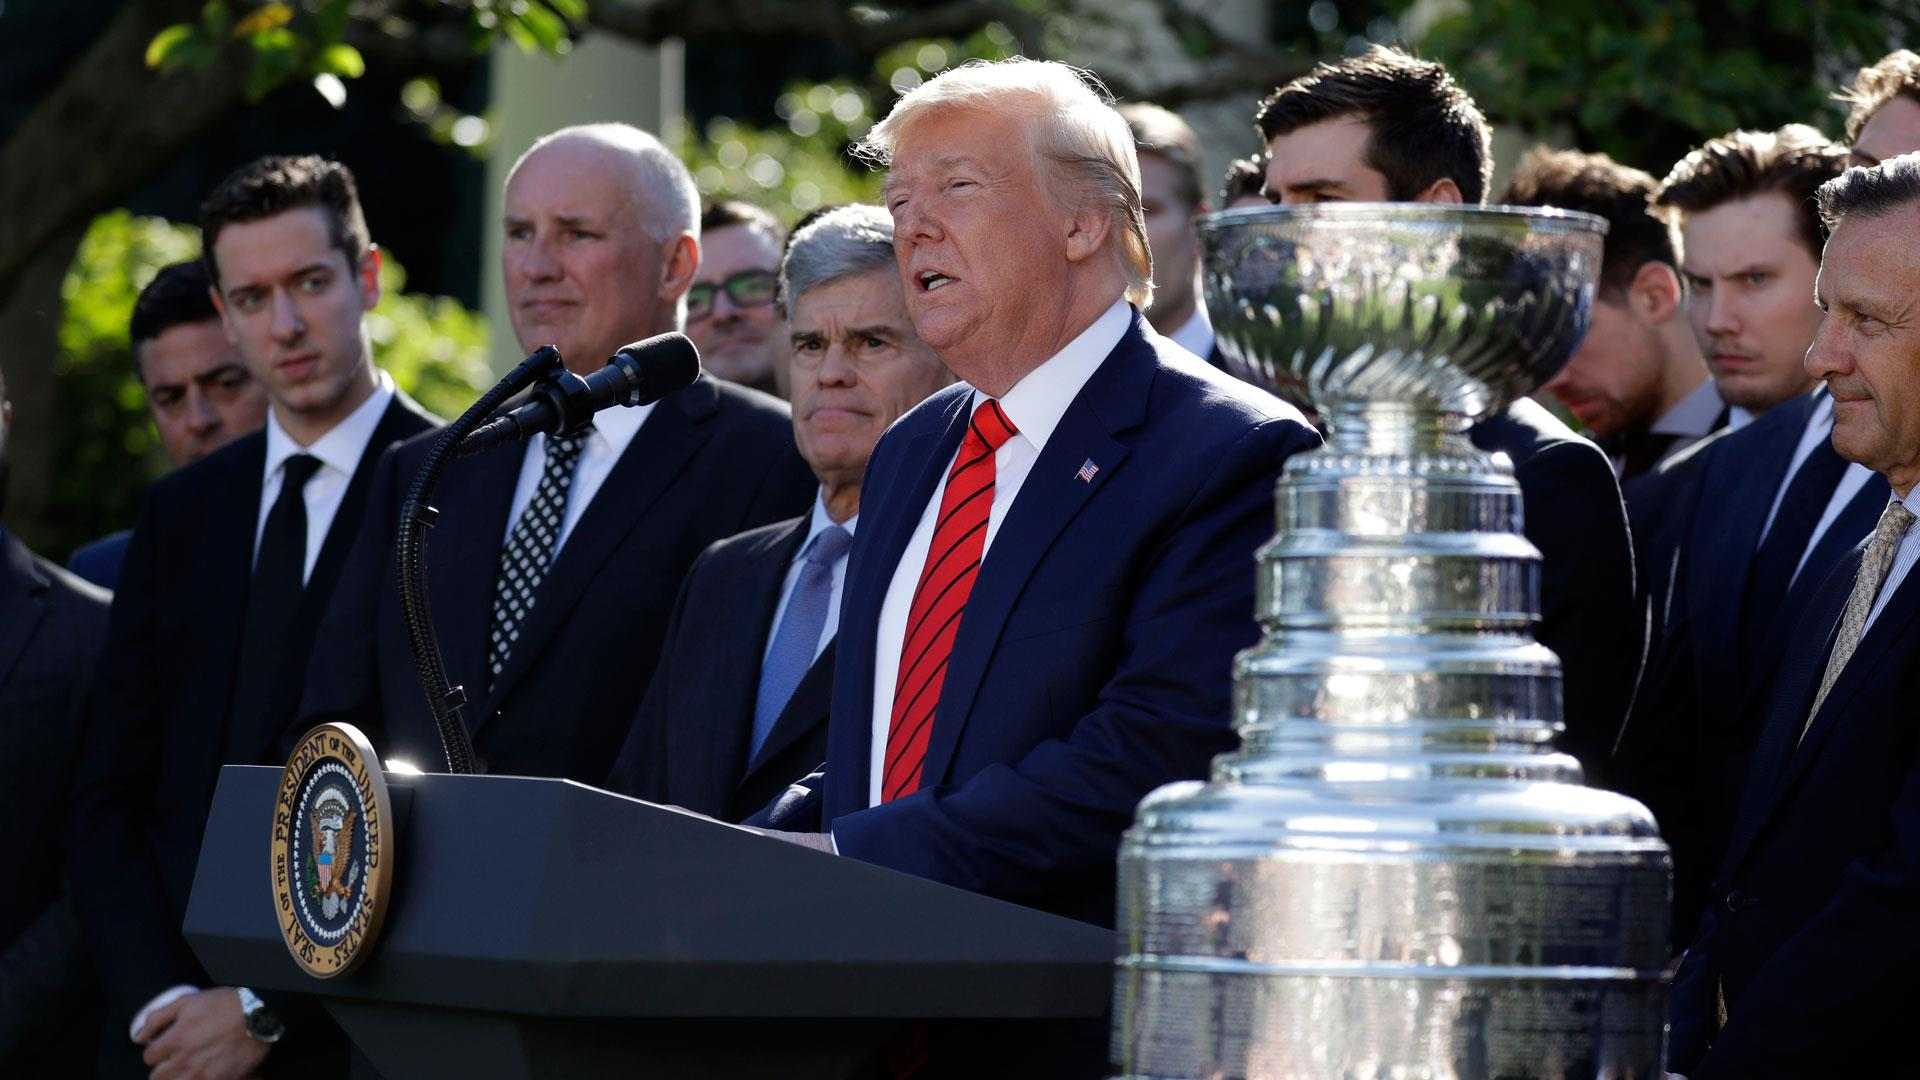 Trump randomly brings up impeachment while honoring 2019 Stanley Cup Champions